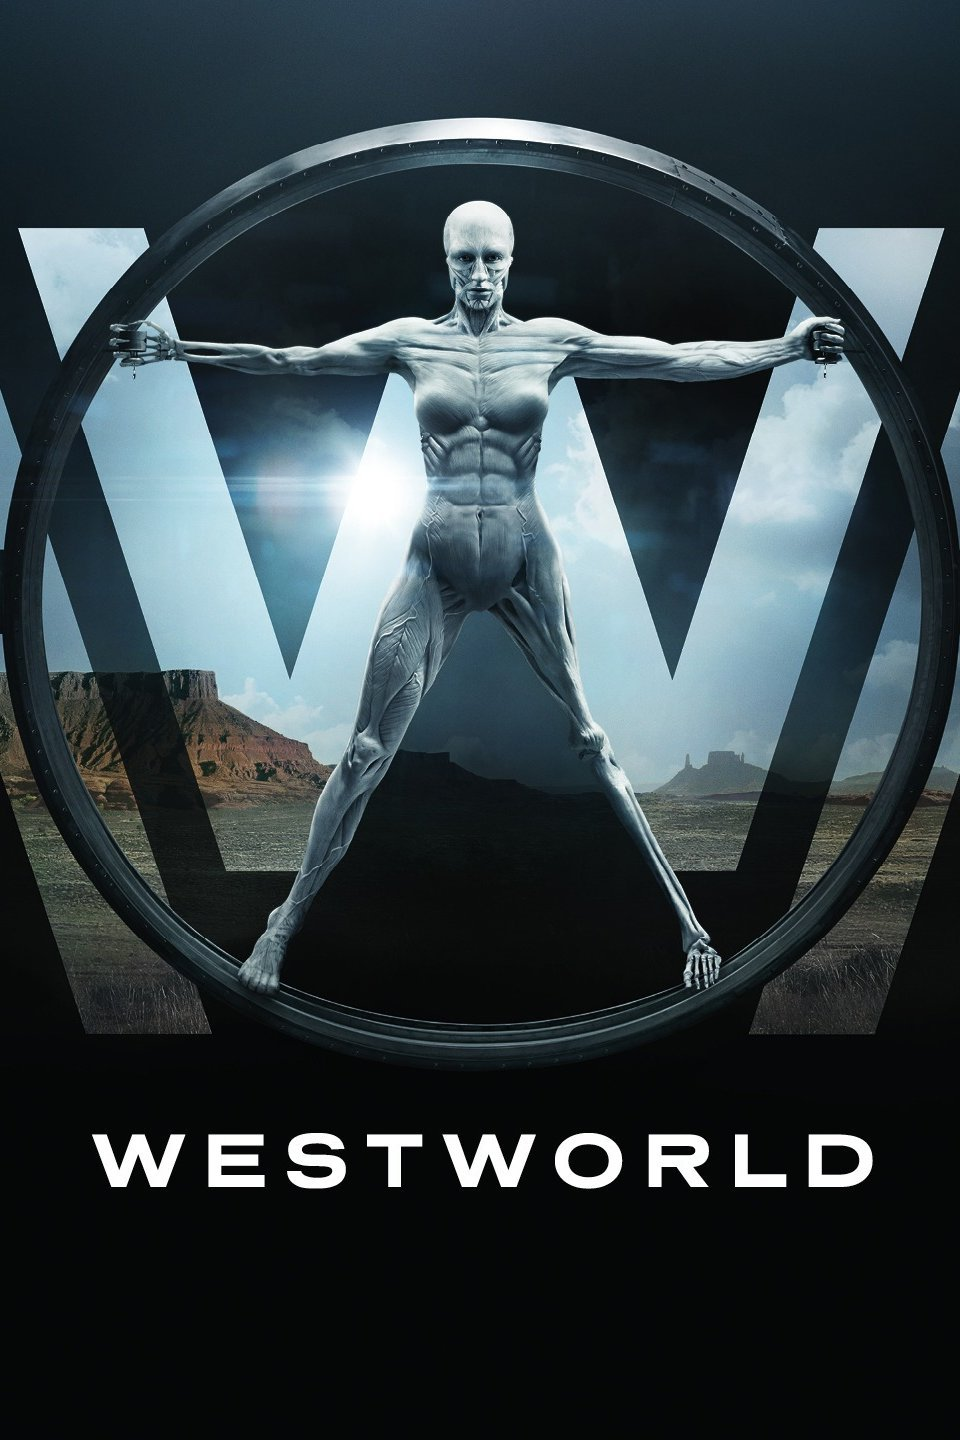 Westworld Television Series Poster - HBO